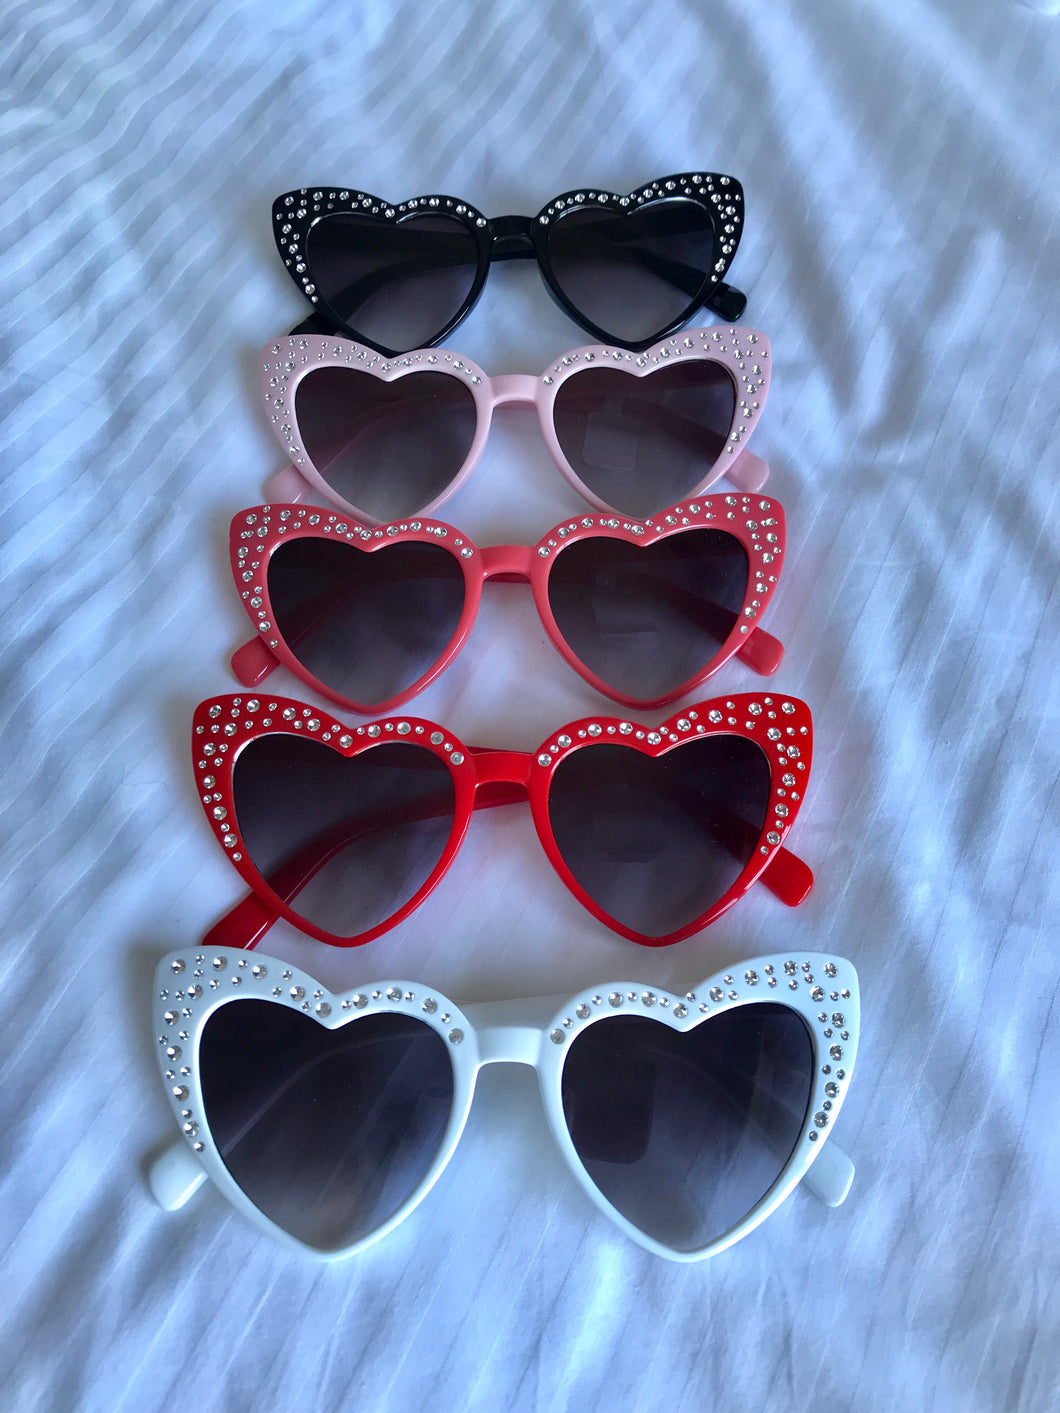 All My Heart Sunglasses